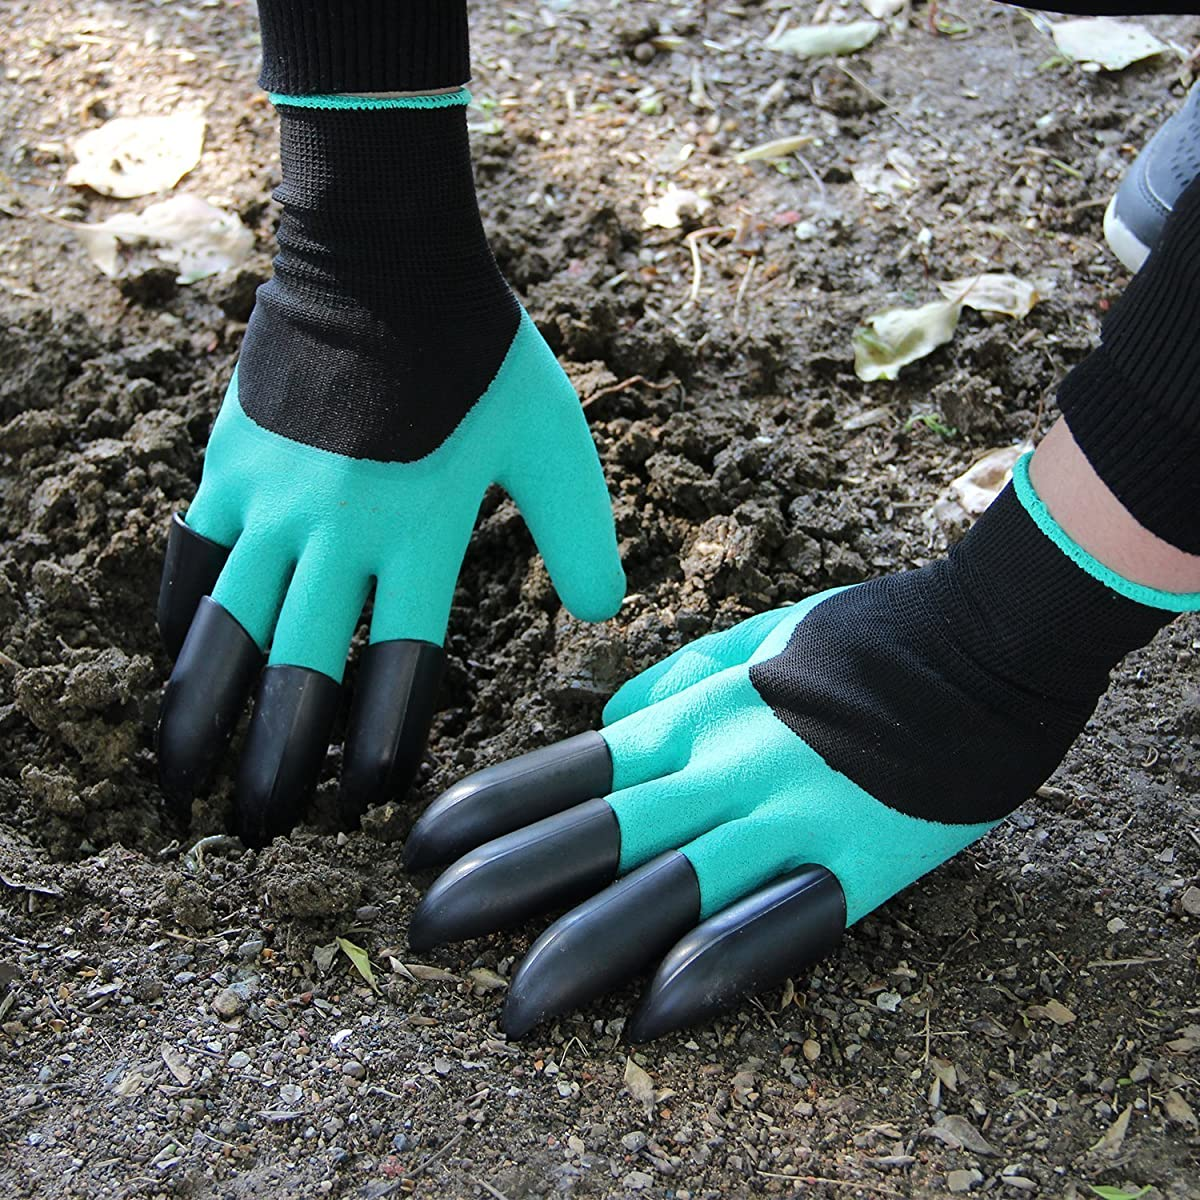 Garden Gloves With Claws, Great for Digging Weeding Seeding poking -Safe for Rose Pruning –Best Gardening Tool -Best Gift for Gardeners (Double Claw)